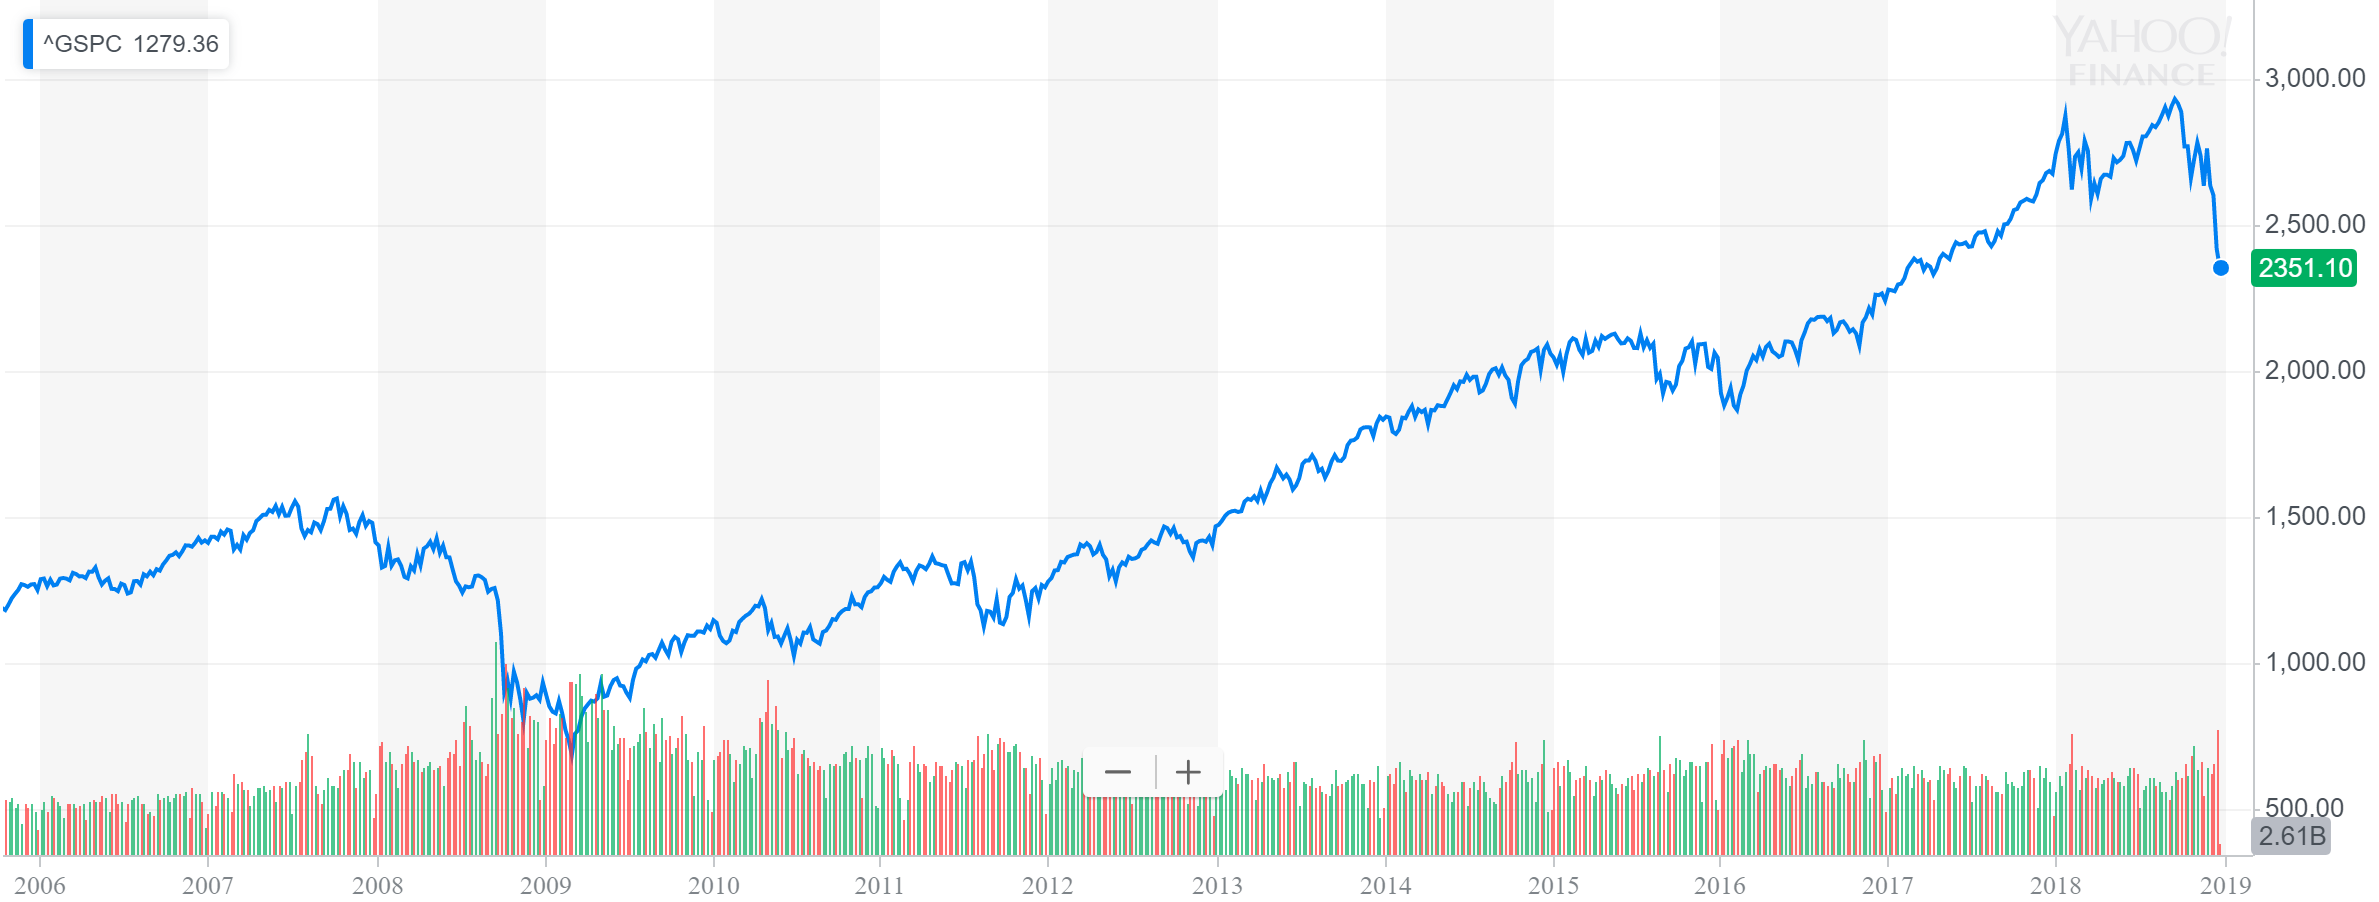 Stocks performance 2006-2018